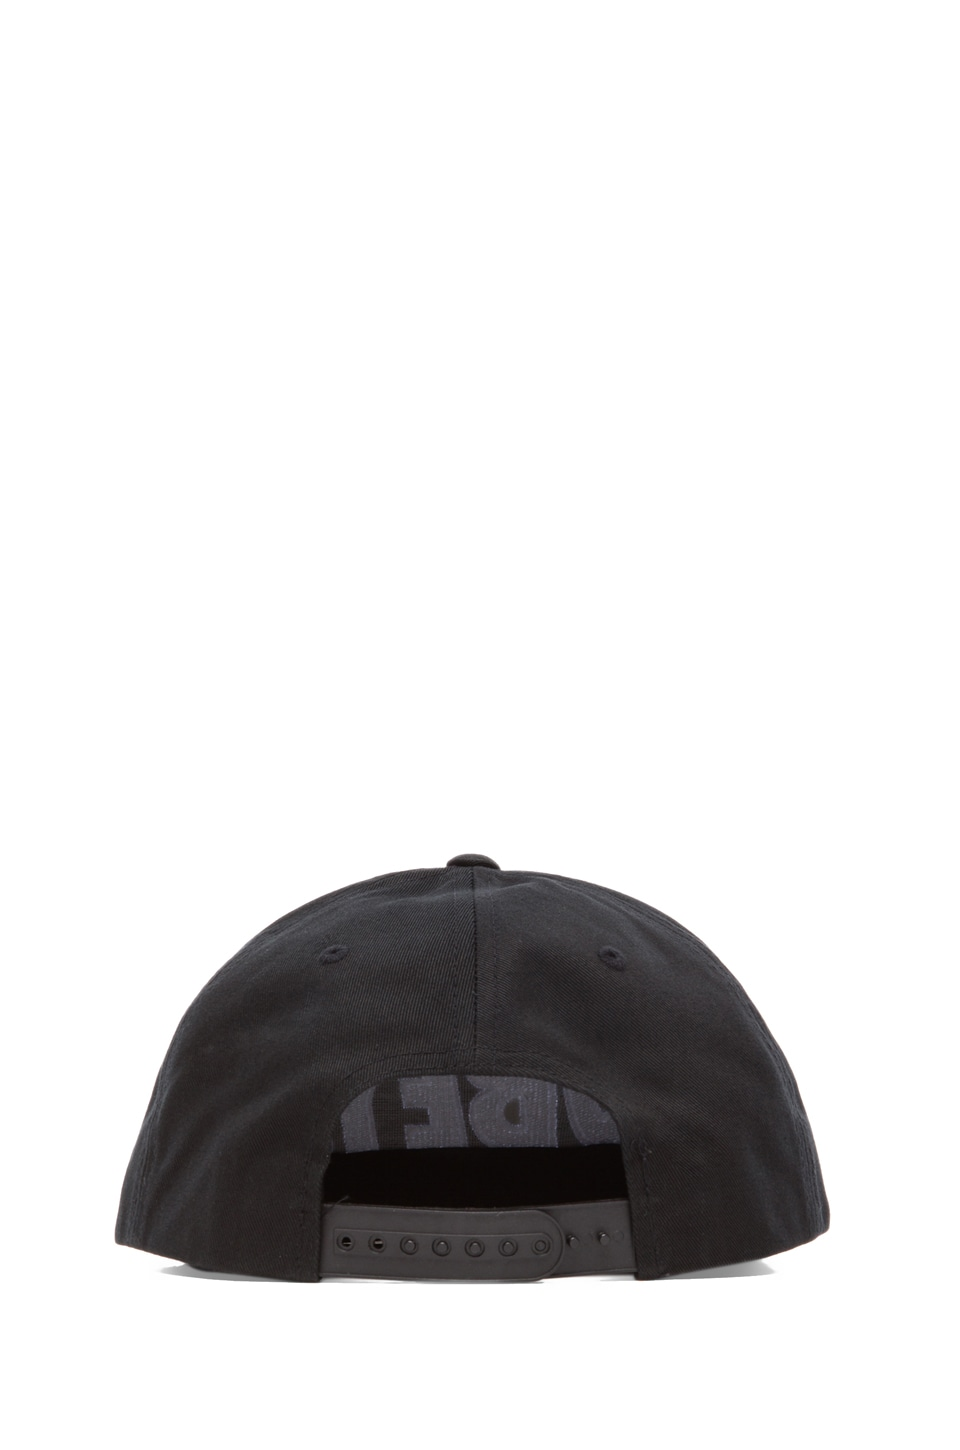 Obey The City Snapback in Onyx